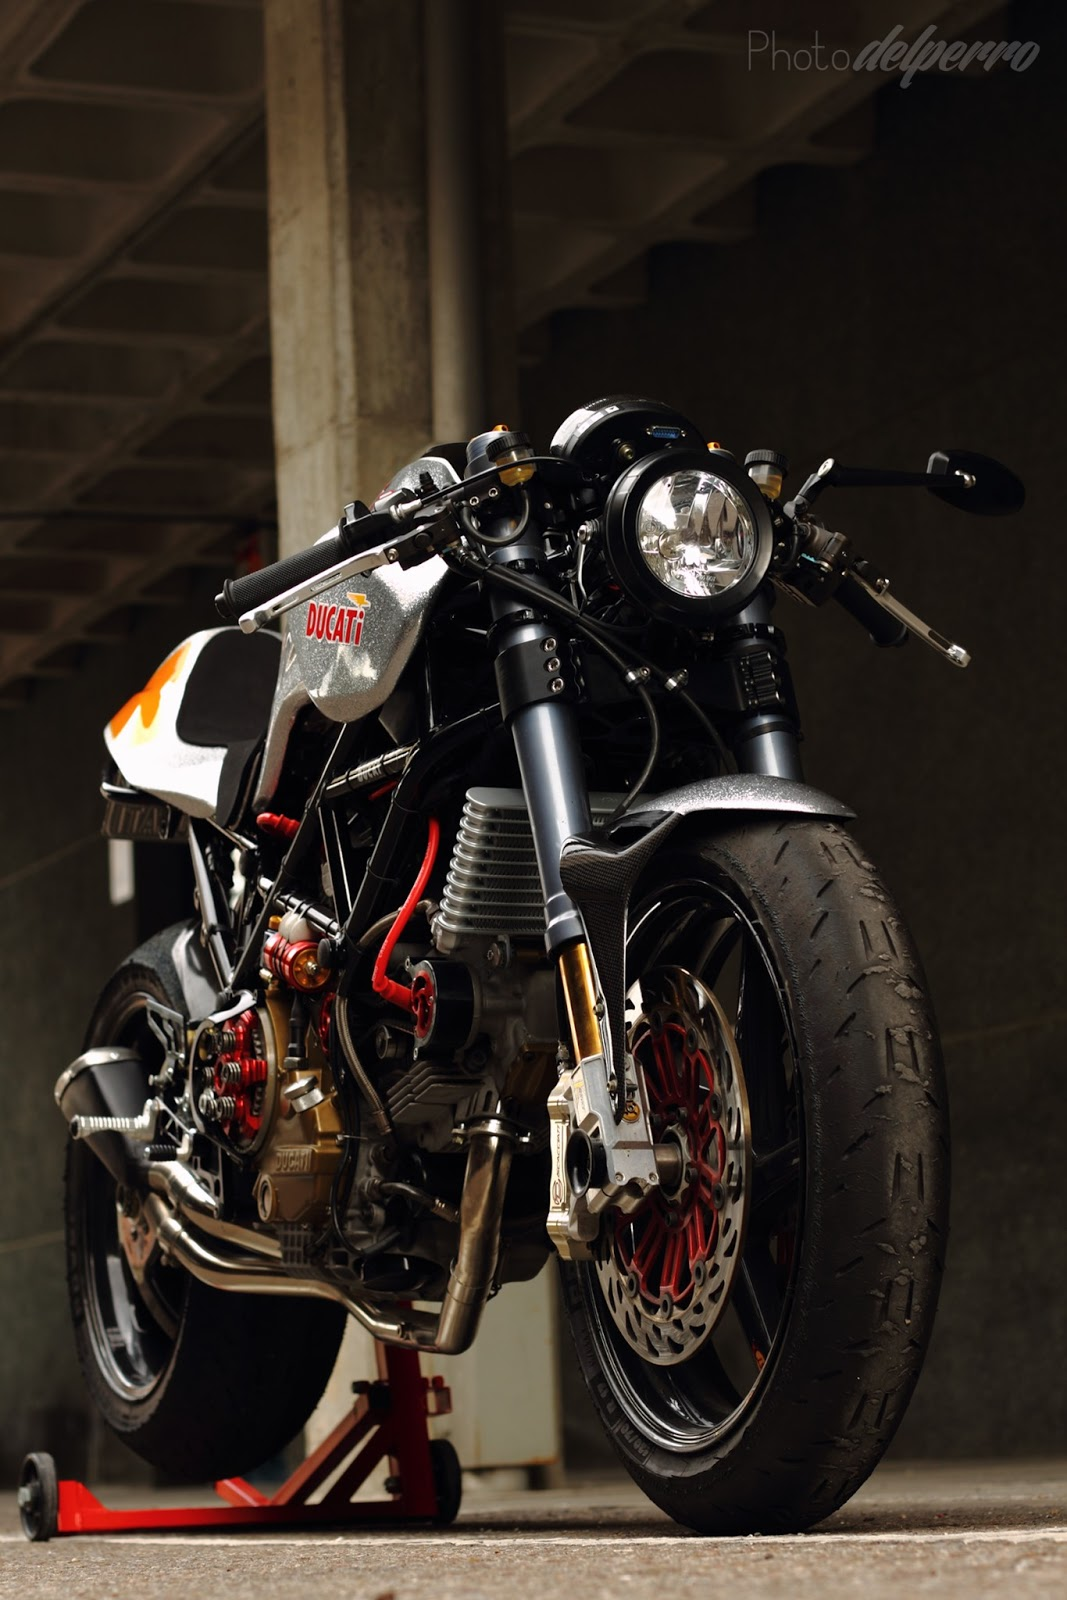 Ducati cafe Racer | Ducati monster S2R 1000 Cafe Racer | Ducati Monster cafe Racer | By Radical ducati | Ducati cafe racer for sale | Ducati sport 1000 | Radical Ducati